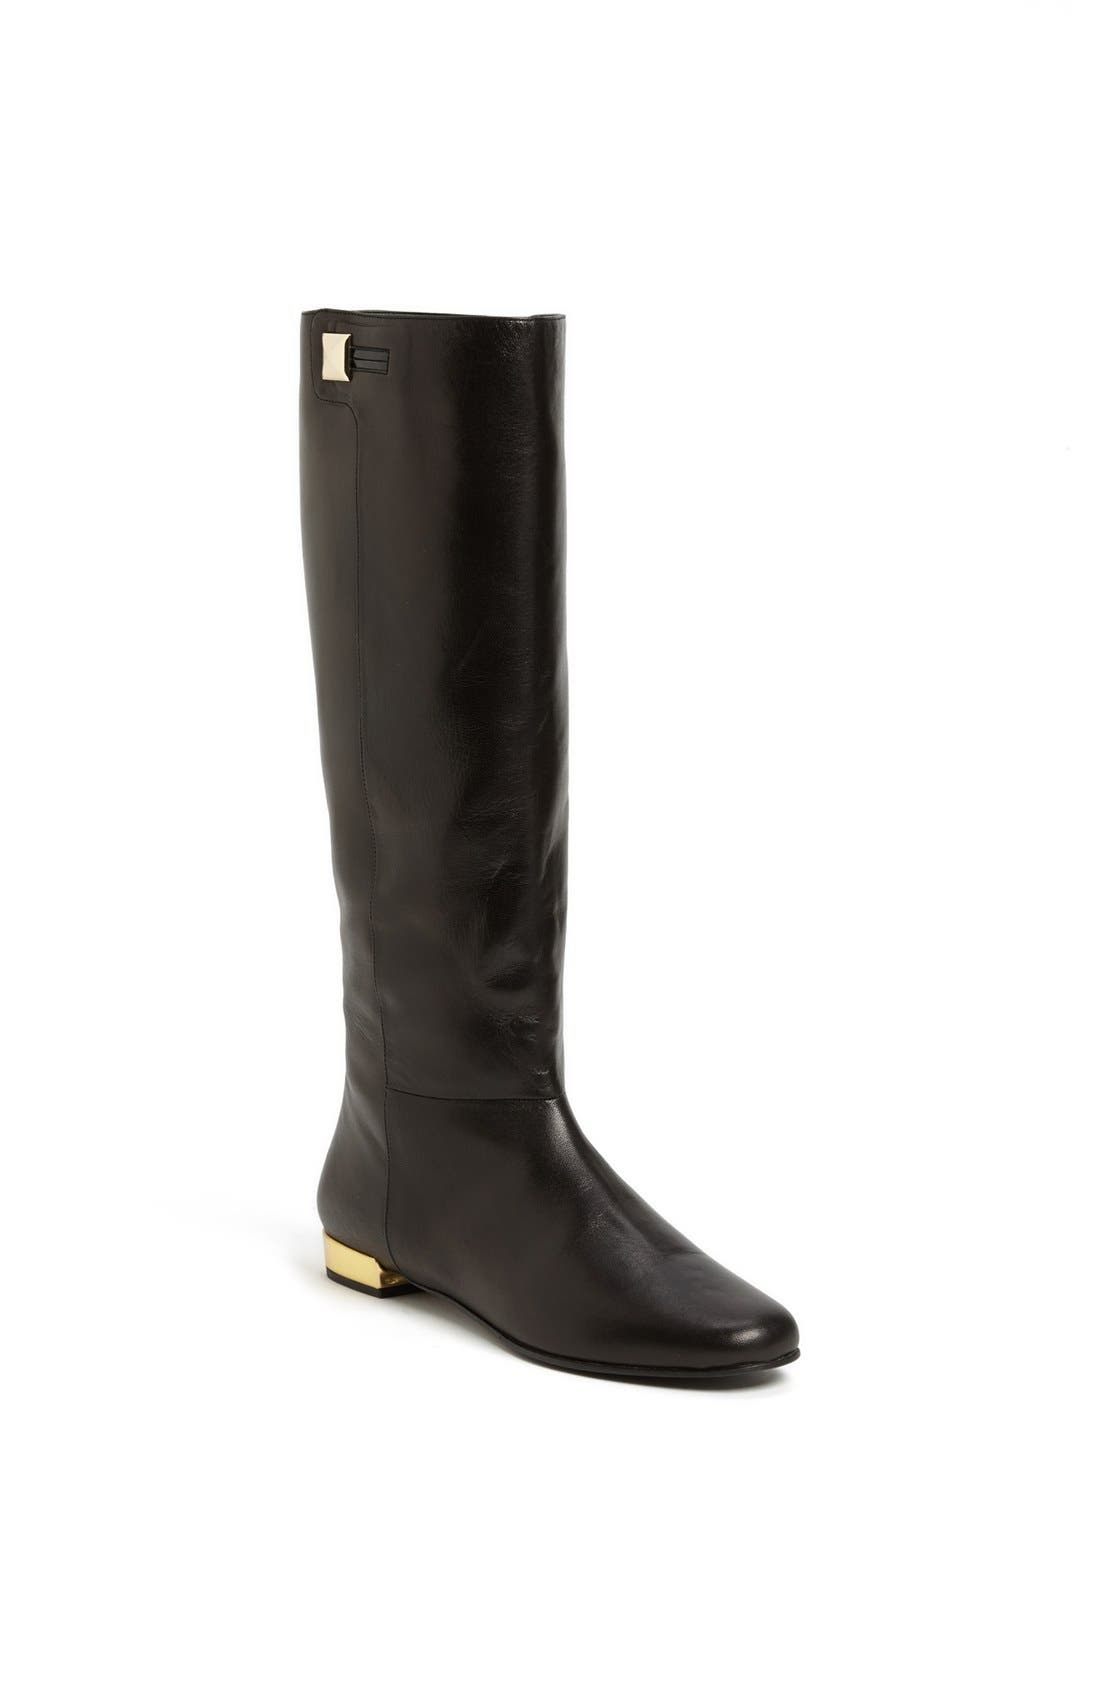 Alternate Image 1 Selected - kate spade new york 'oliver' boot